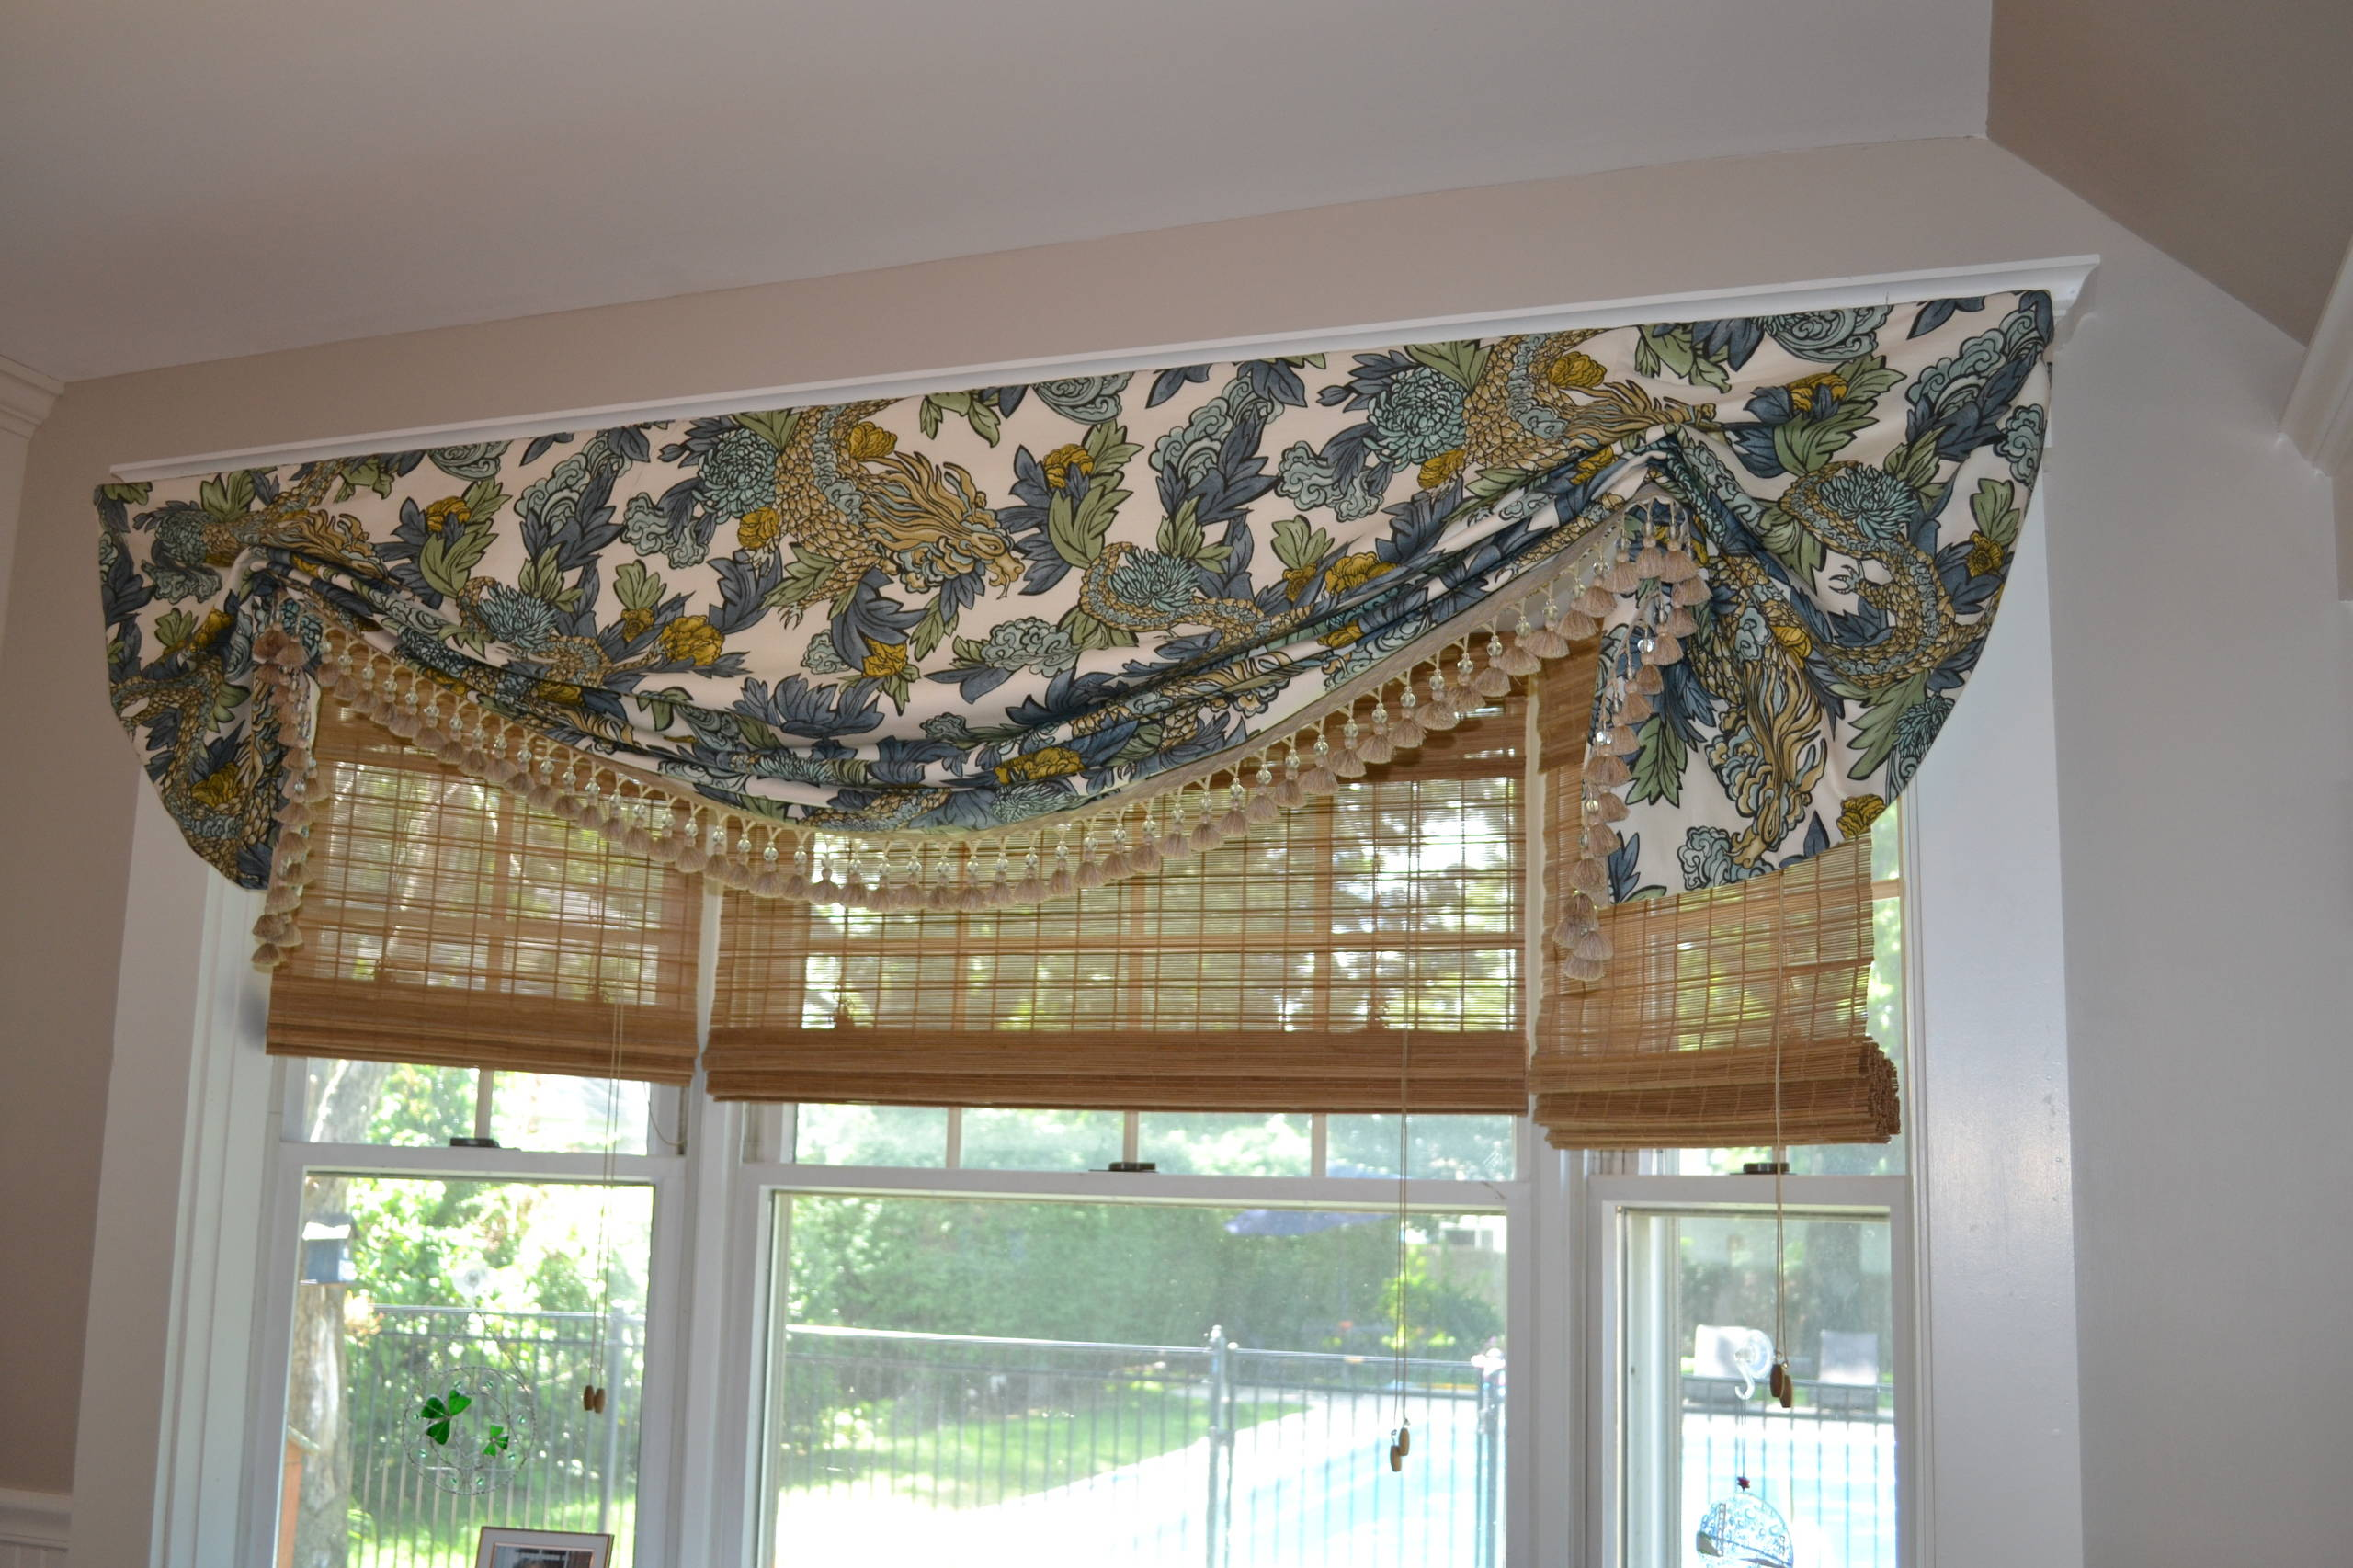 Stationary London Shade Valance on a Bay Window in a Connecticut Kitchen